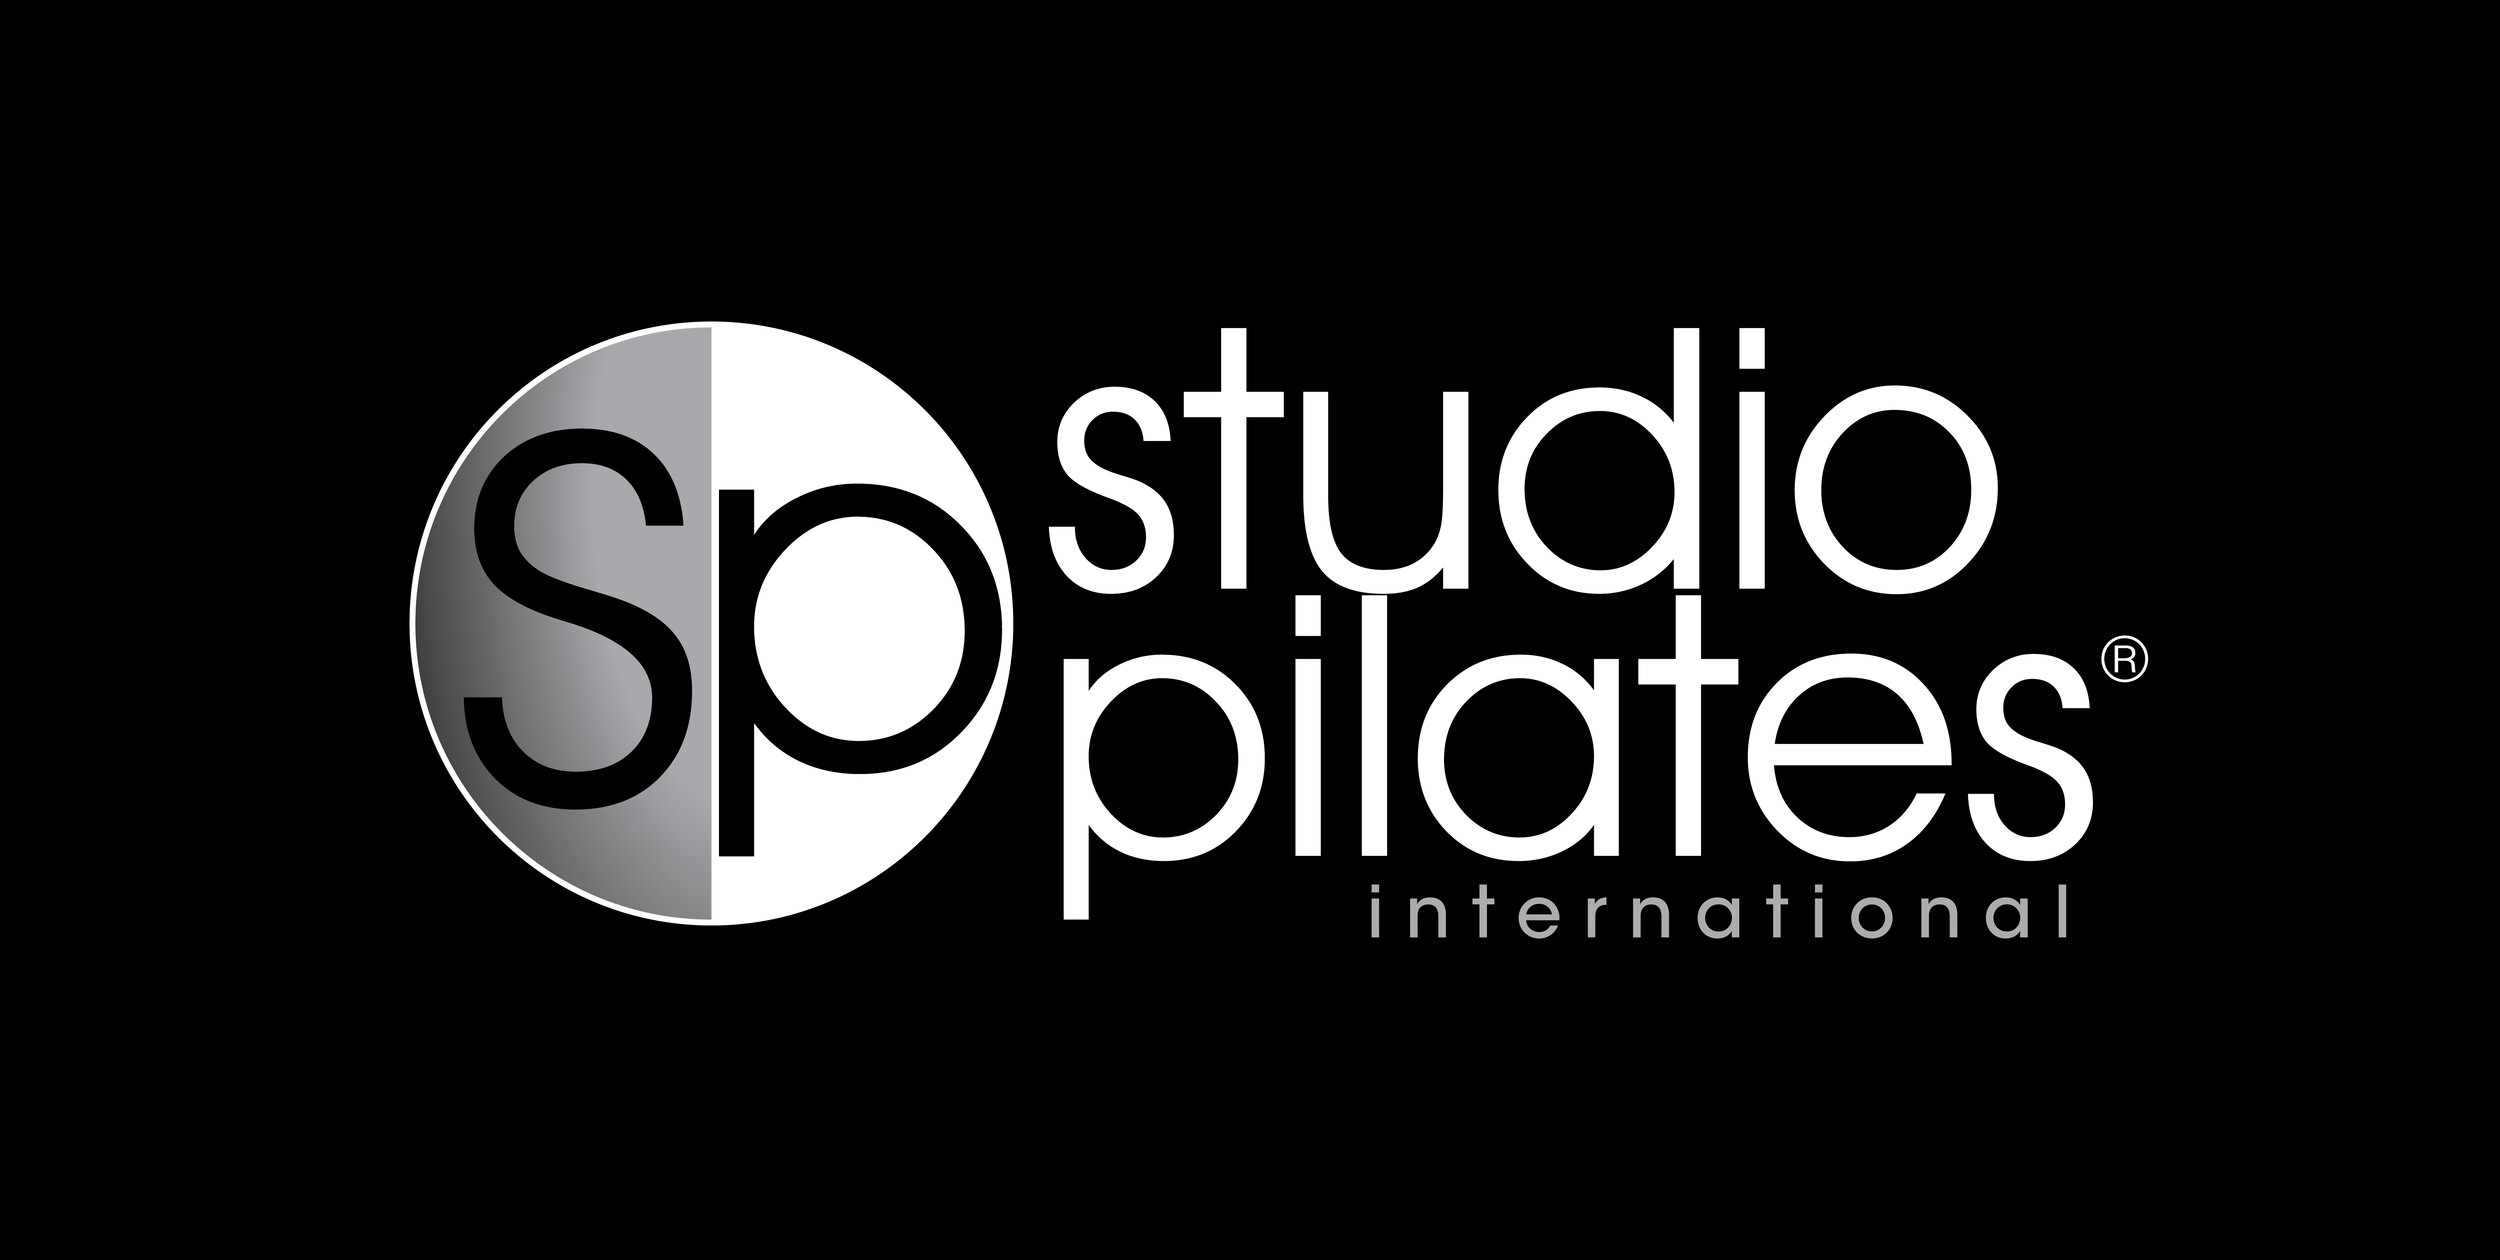 Studio Pilates Mosman - Discover your new fitness obsession with Studio Pilates's 40min sessions that are high energy, fun, and challenging both mentally and physically. Compliment your chiropractic corrective care with workouts designed to stabilise your your spine and postural improvements.Located at Memory Park MosmanSuite 1, 44A Avenue Road Mosman 2088Mob: 0449 782 949www.studiopilates.com/studios/mosman/Instagram: @lattes_and_pilates